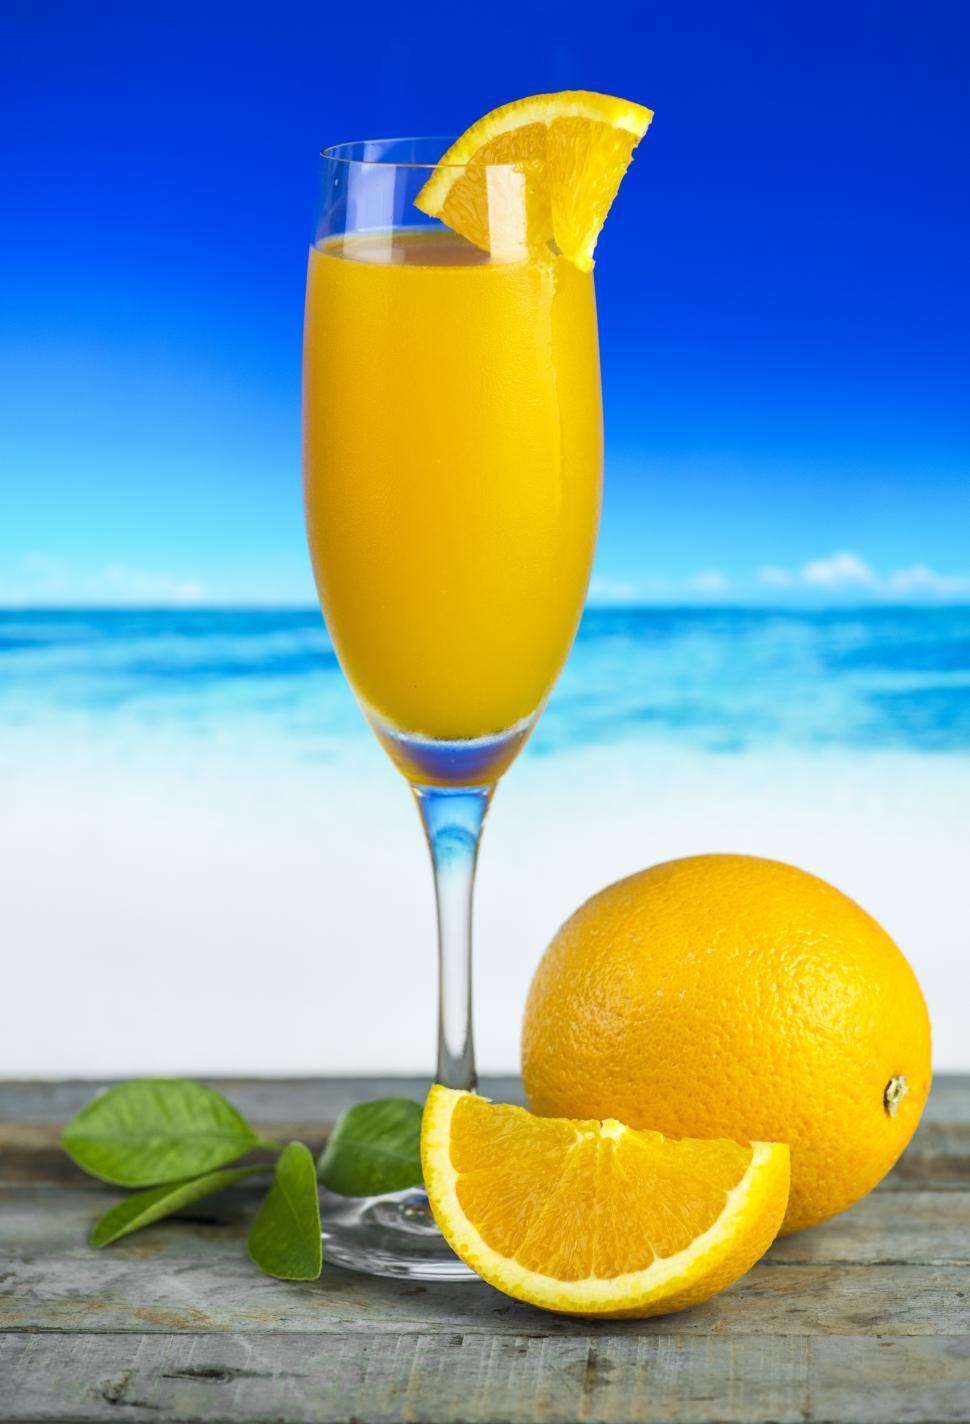 Download Free Stock HD Photo of Close up of orange juice in a glass, beach scene Online